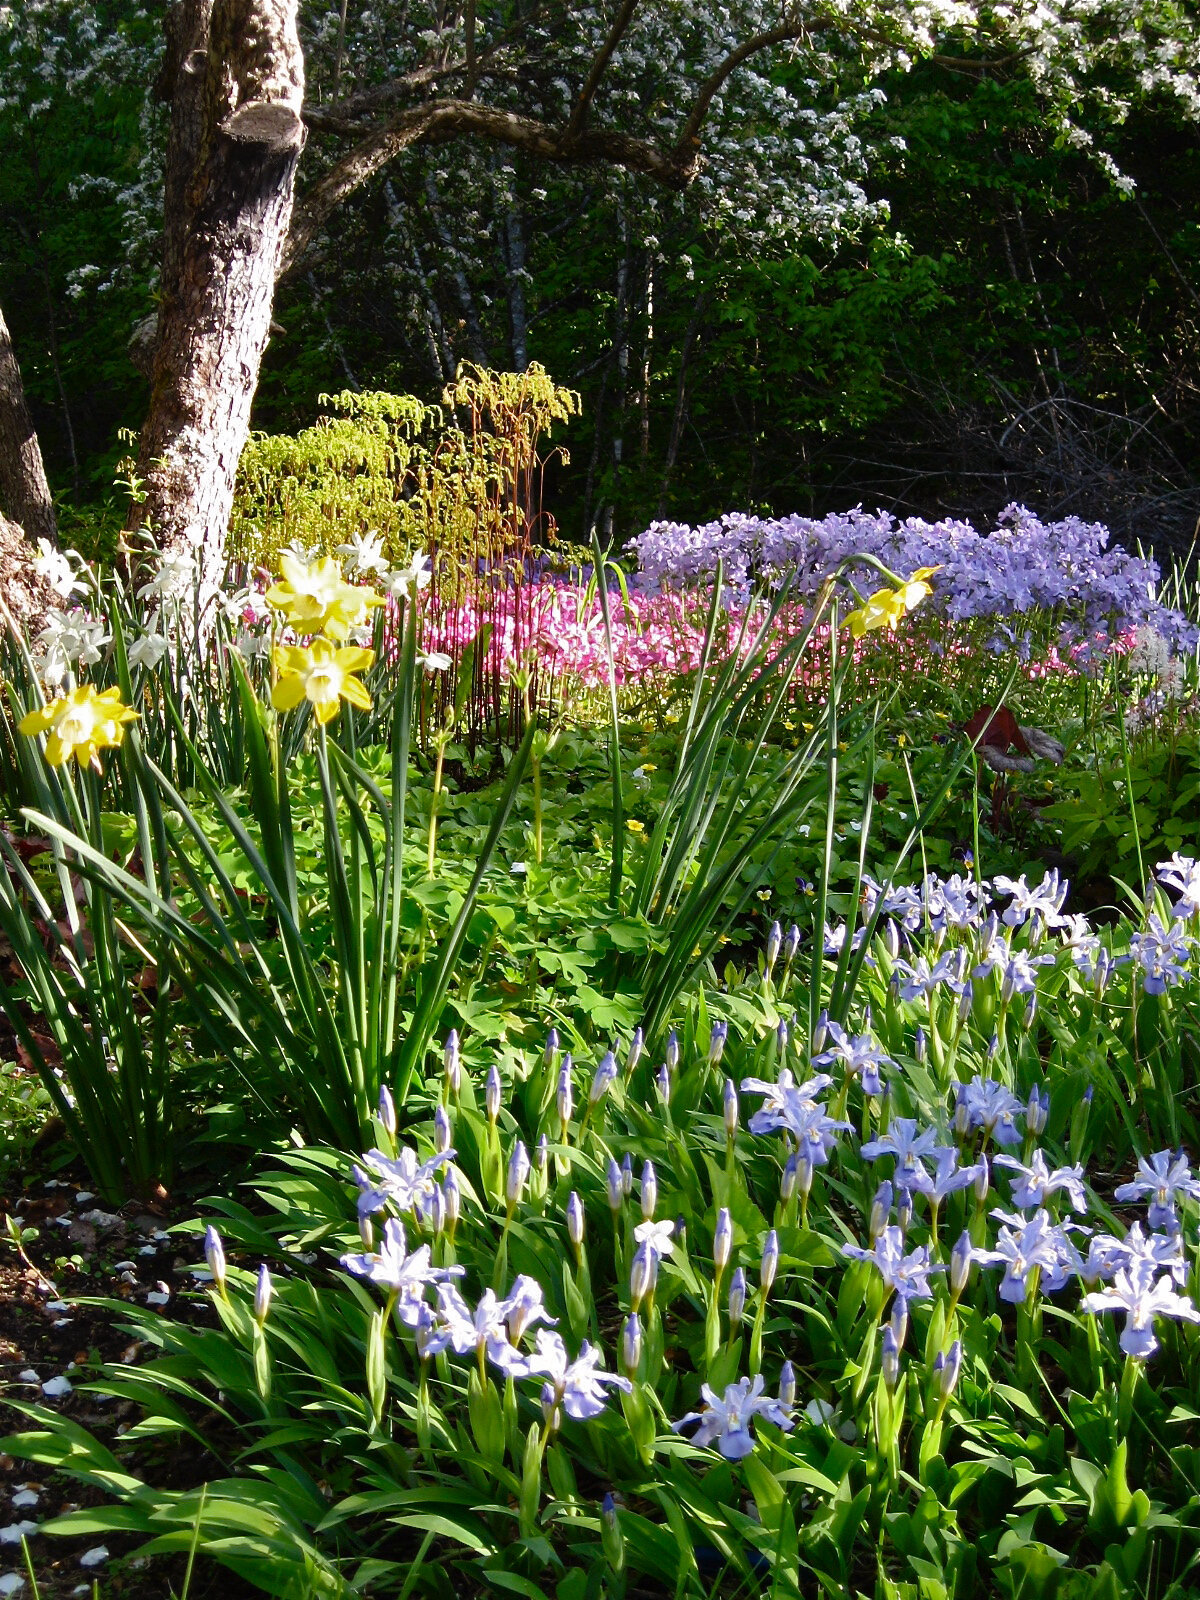 Many early spring flowering perennials are best planted now.